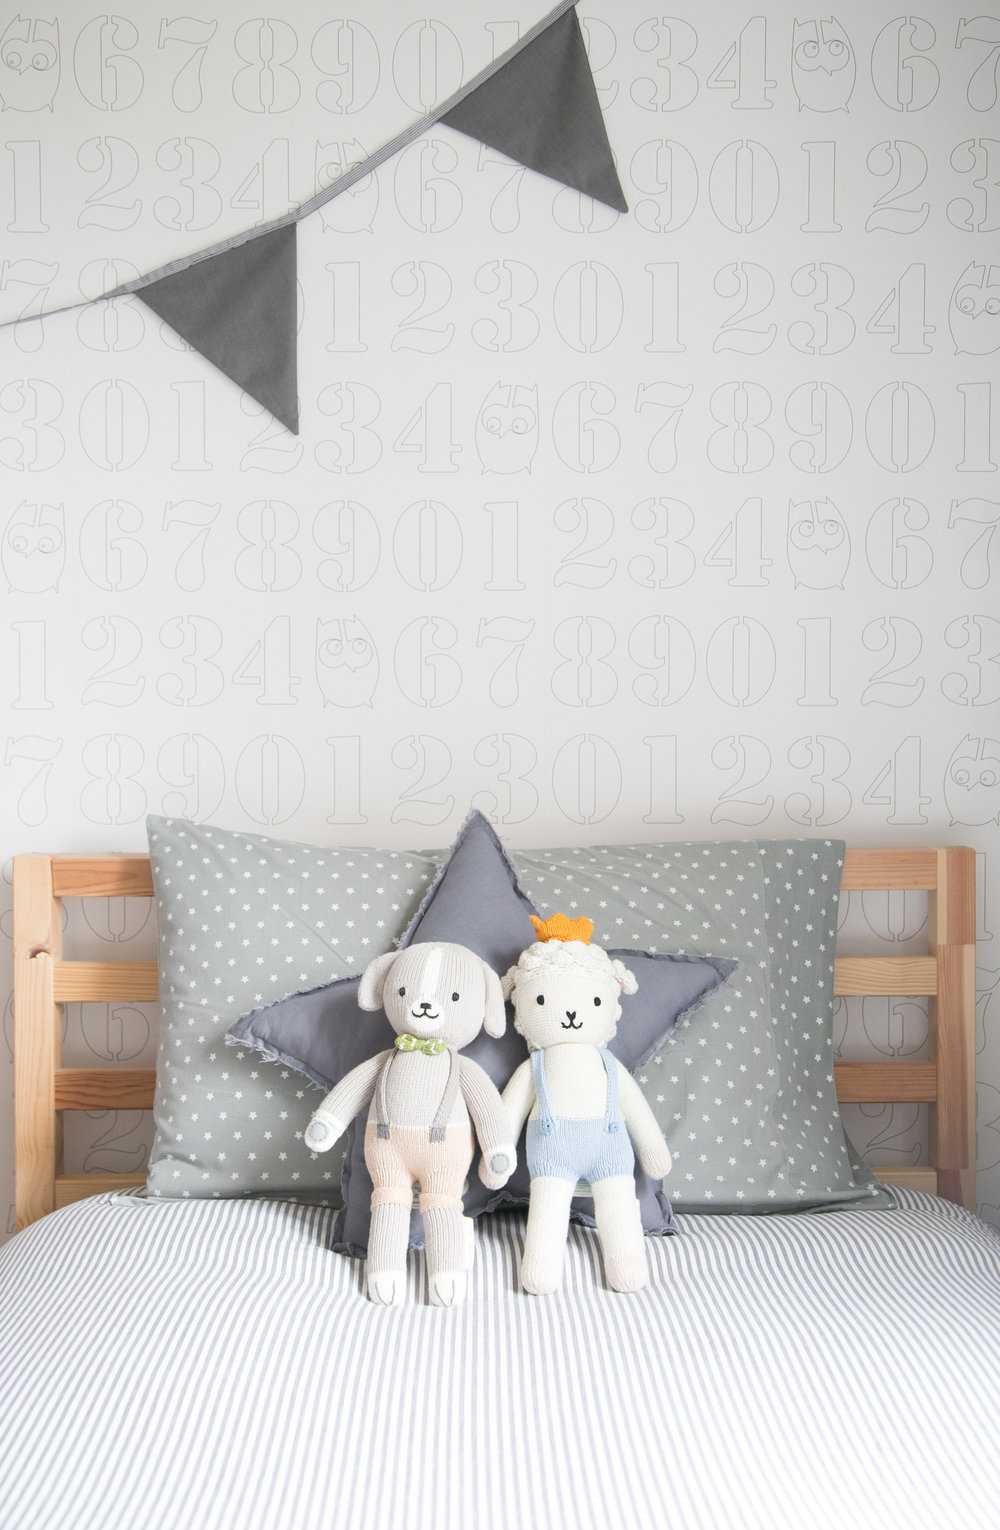 numbers wallpaper and cuddle + kind dolls